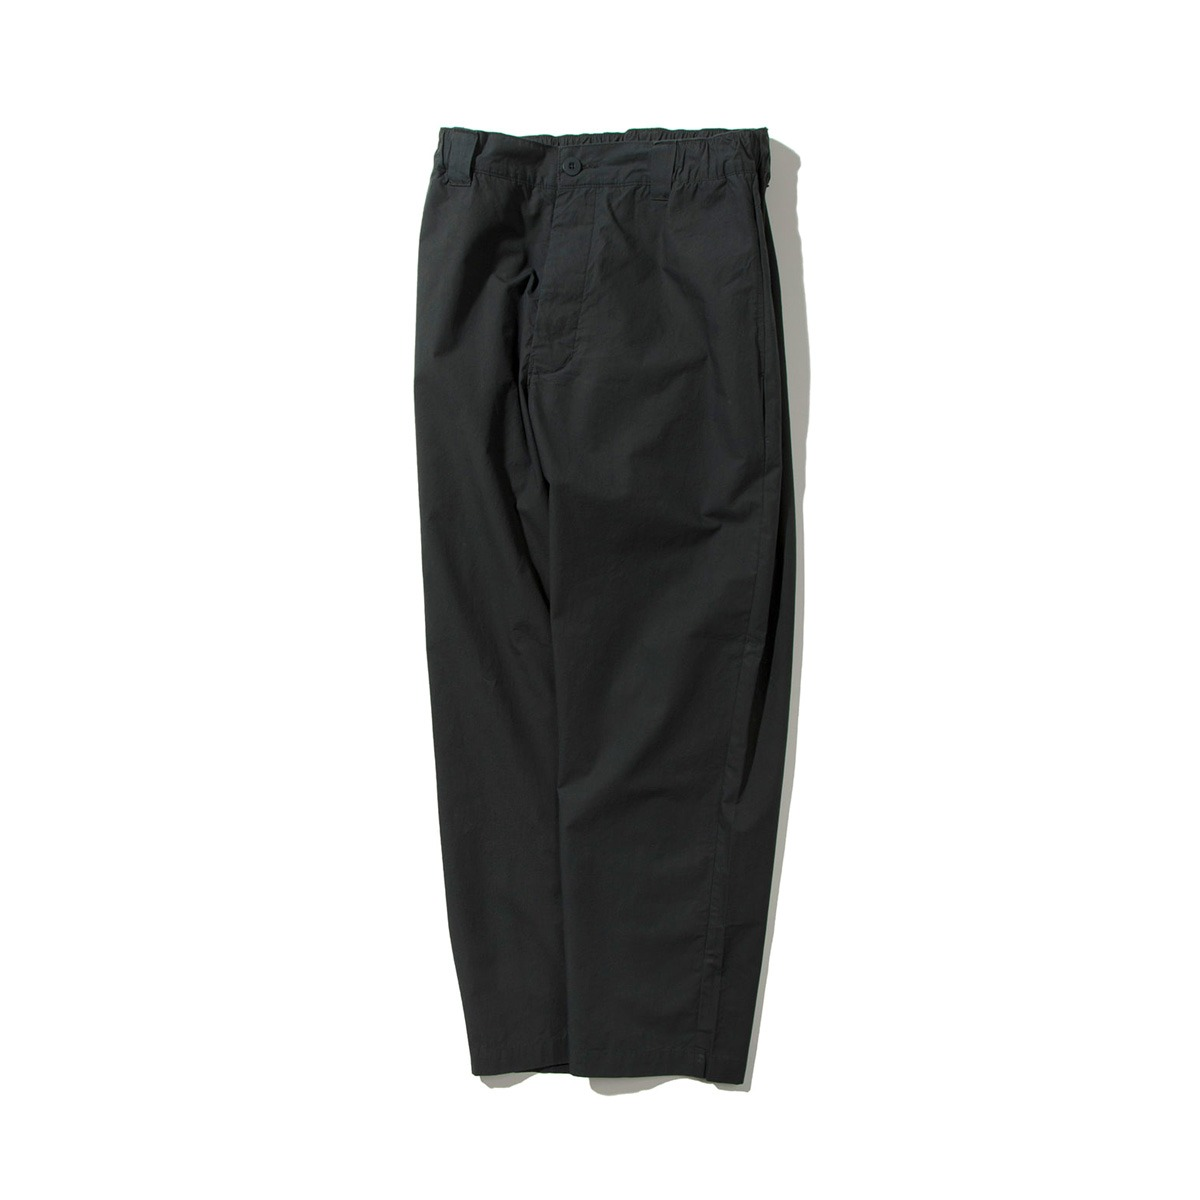 [NEITHERS] 325-2 RELAXED WIDE PANTS 'MOSS GREEN'